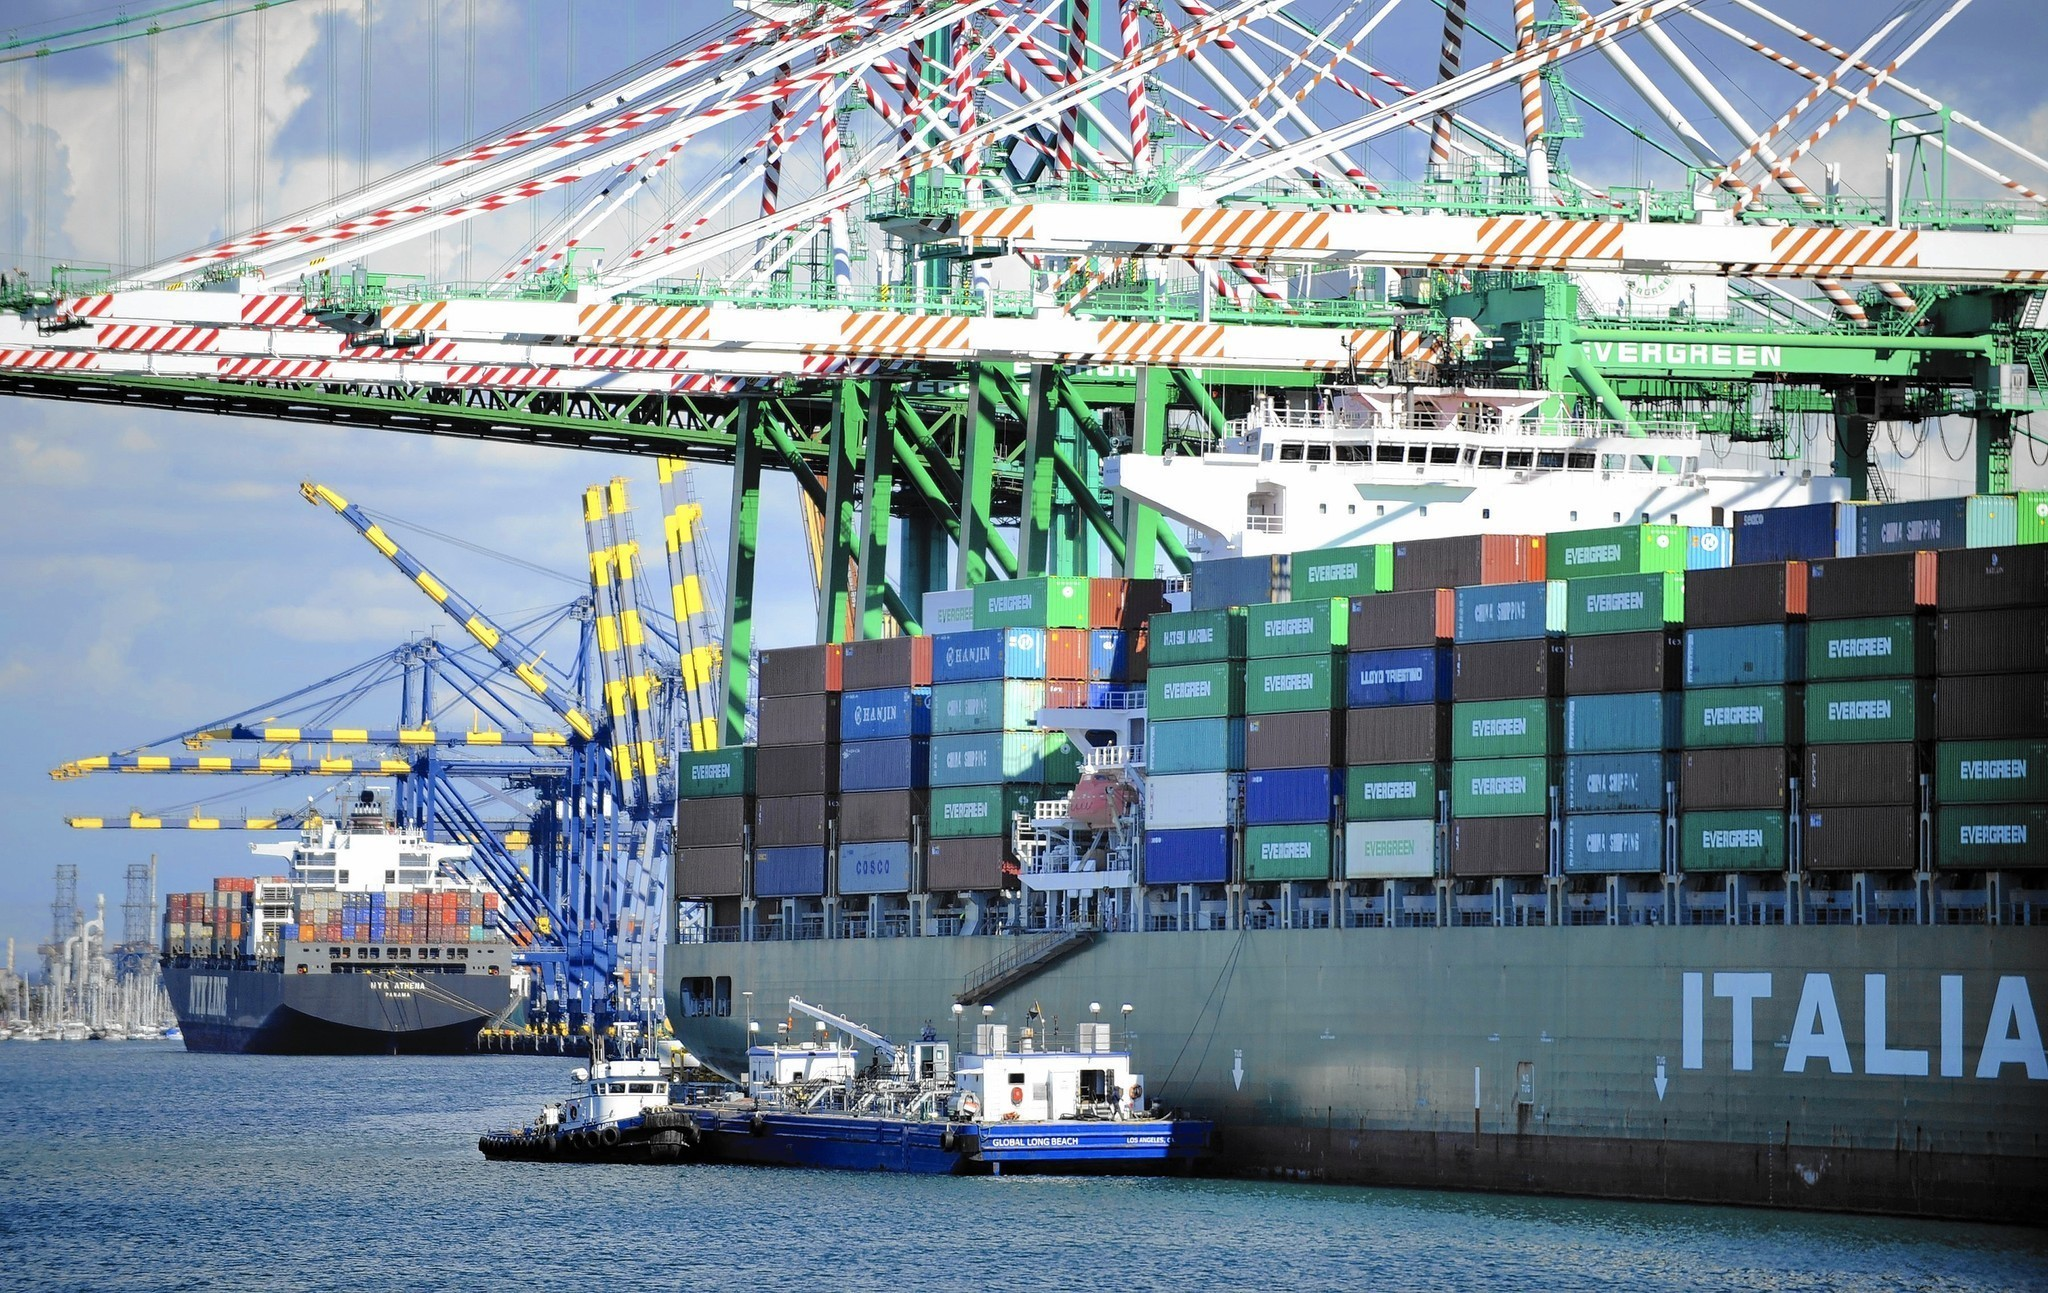 Longshoremen maintain clout in era of globalization and automation